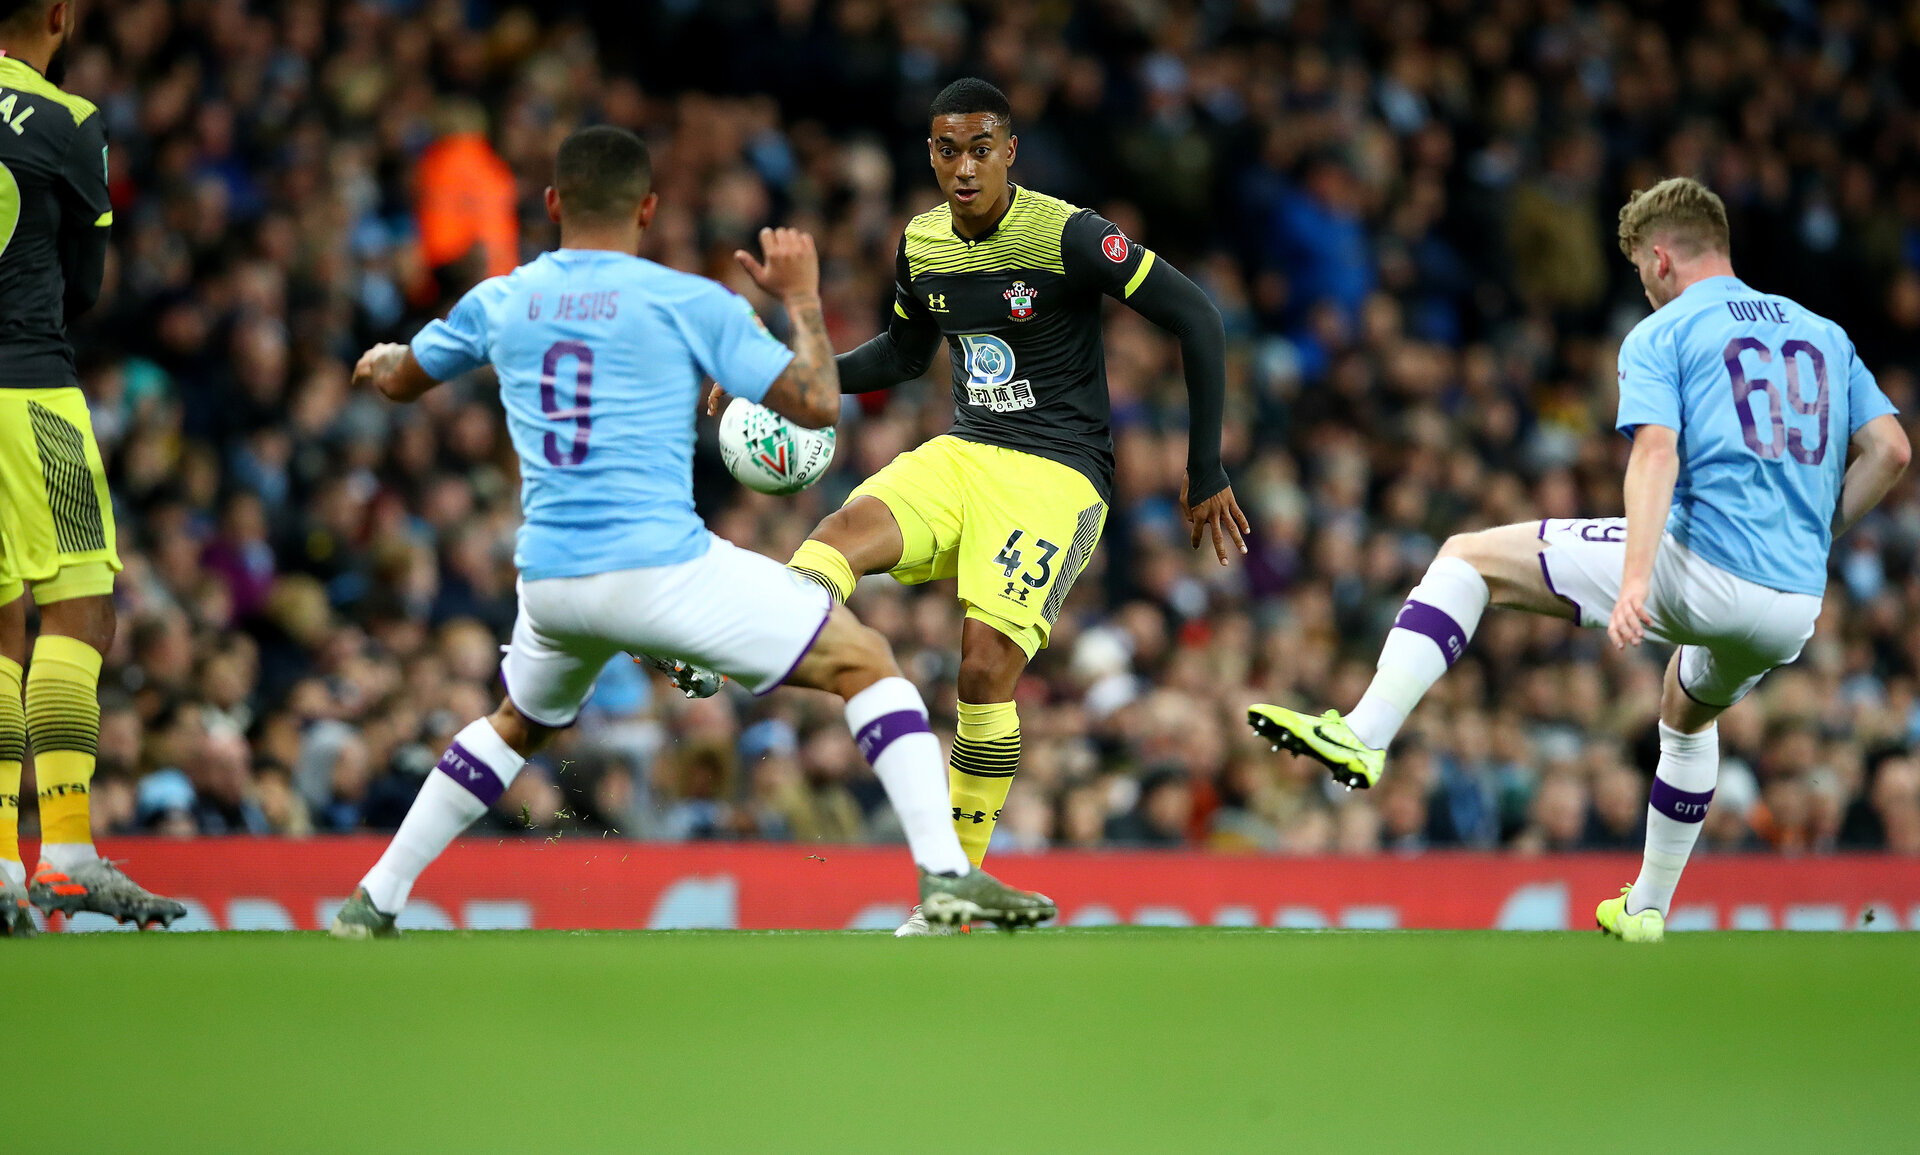 MANCHESTER, ENGLAND - OCTOBER 29: Yan Valery of Southampton during the Carabao Cup Round of 16 match between Manchester City and Southampton FC at the Etihad Stadium on October 29, 2019 in Manchester, England. (Photo by Matt Watson/Southampton FC via Getty Images)